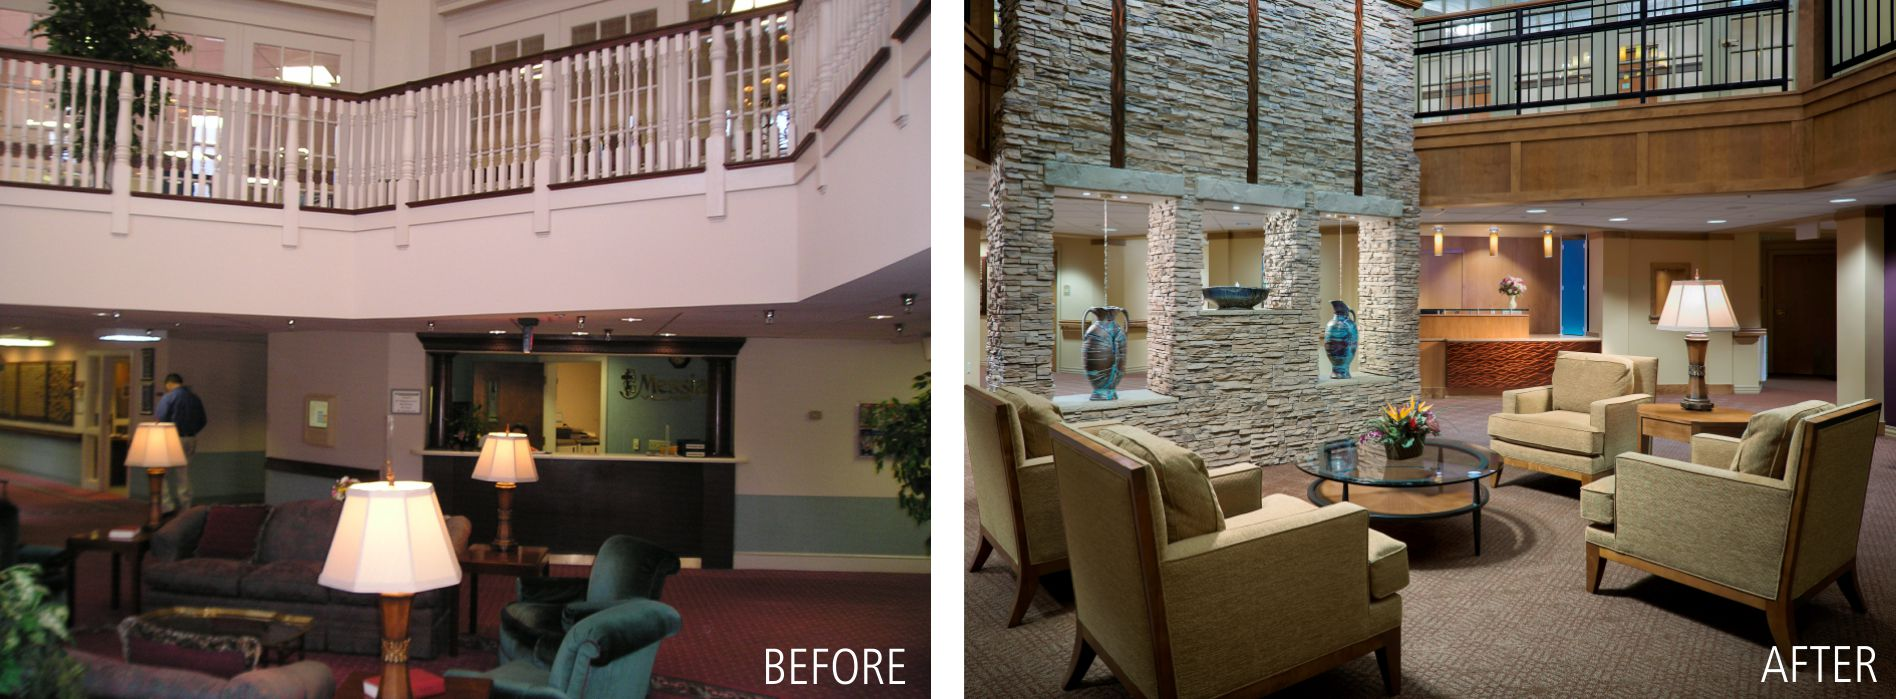 lobby before & after interior design photos